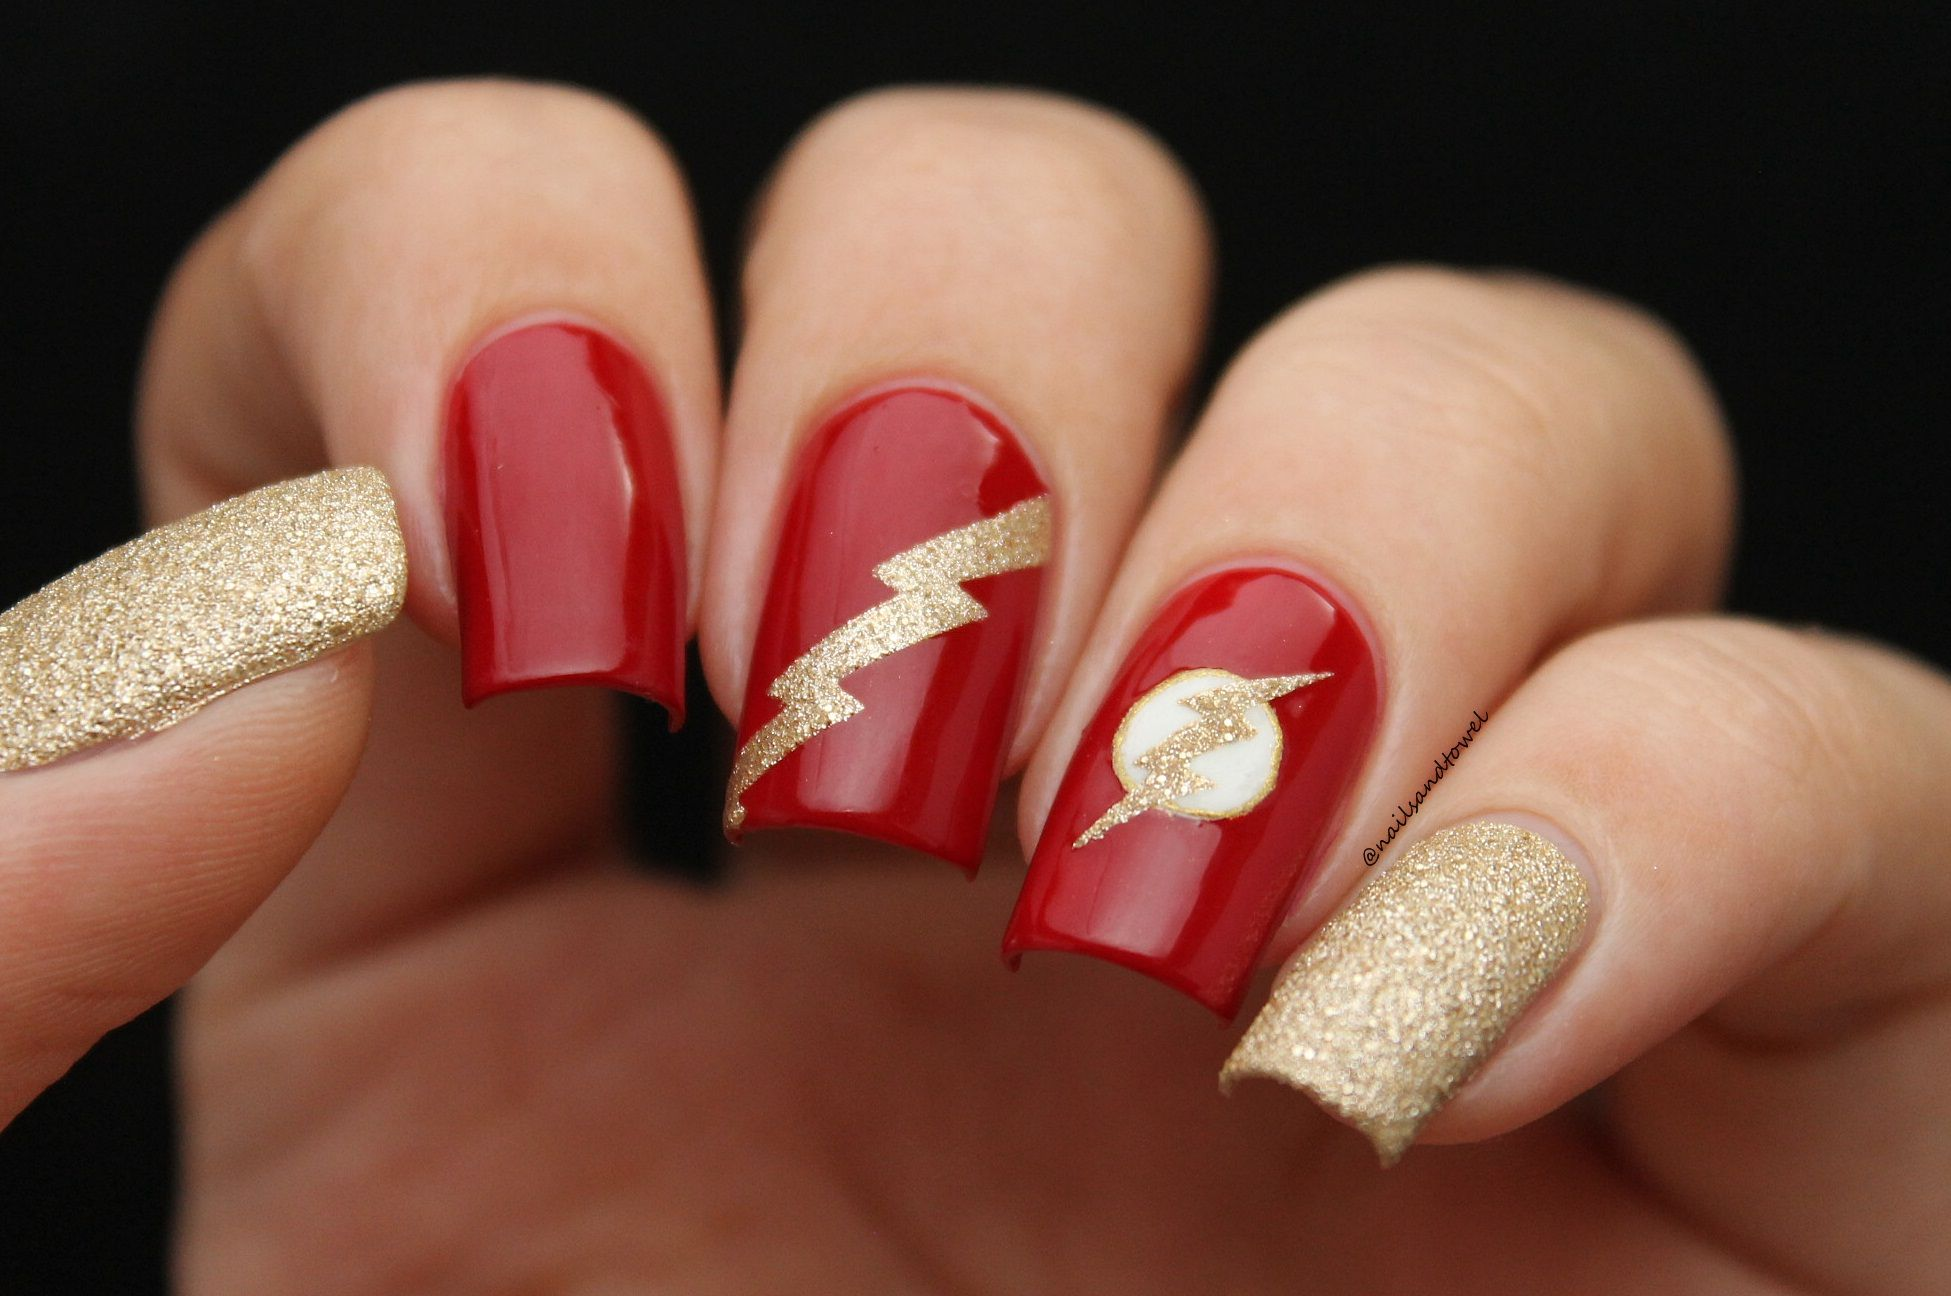 Nail art inspired by The Flash | Nail art inspired by Movies / TV ...